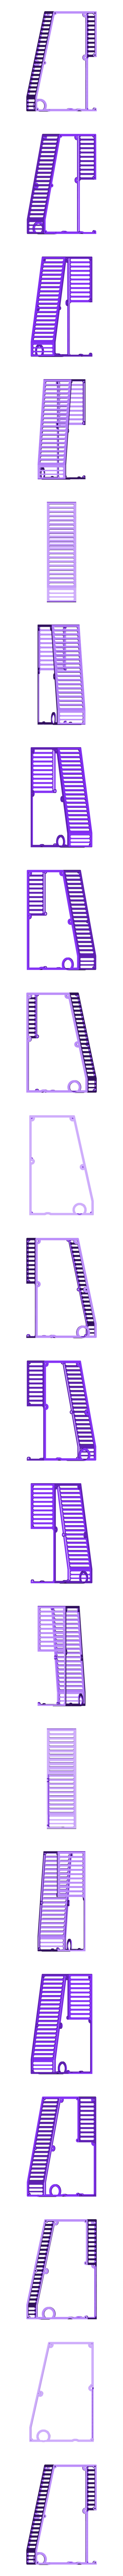 Anet_A8_Frame.stl Download free STL file Modular Anet A8 RAMPS 1.4 + Raspberry Pi 2/3 Case • Design to 3D print, MightyNozzle